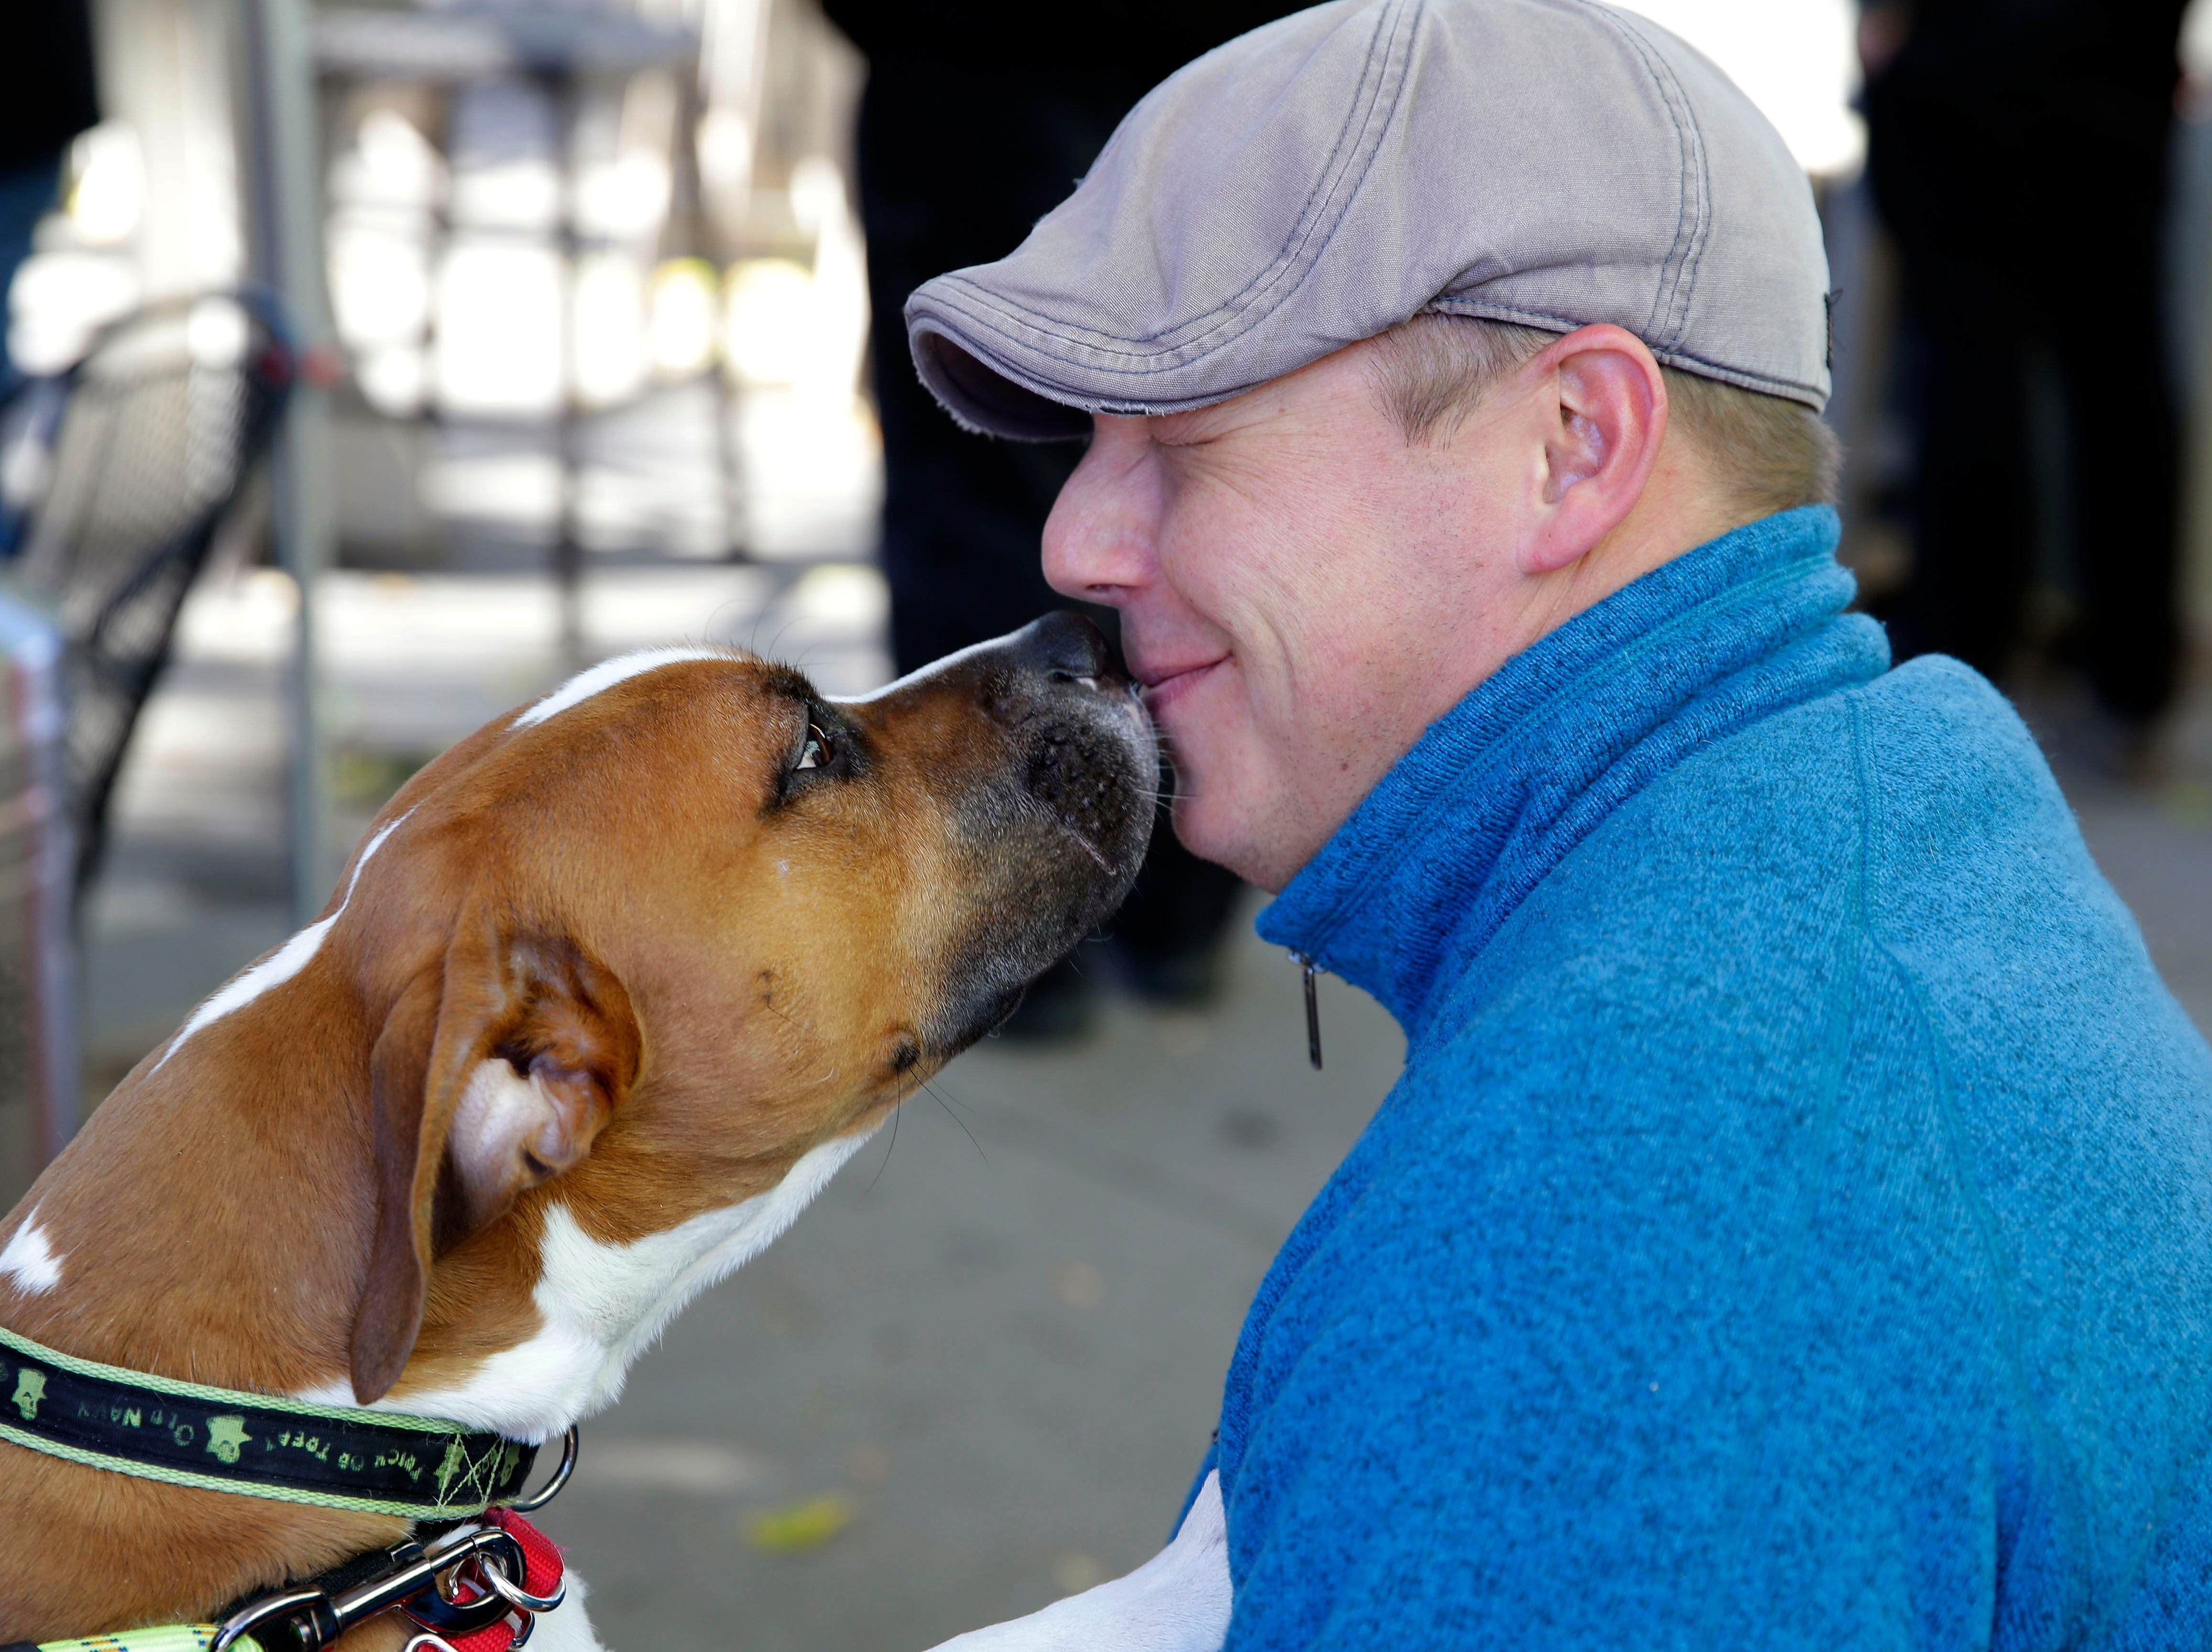 Jackson pays a visit to Jason Beatty during Dogtoberfest as adoptable dogs from the Fox Valley Humane Association are shown Saturday, October 20, 2018, at Fox River House in Appleton, Wis.Ron Page/USA TODAY NETWORK-Wisconsin